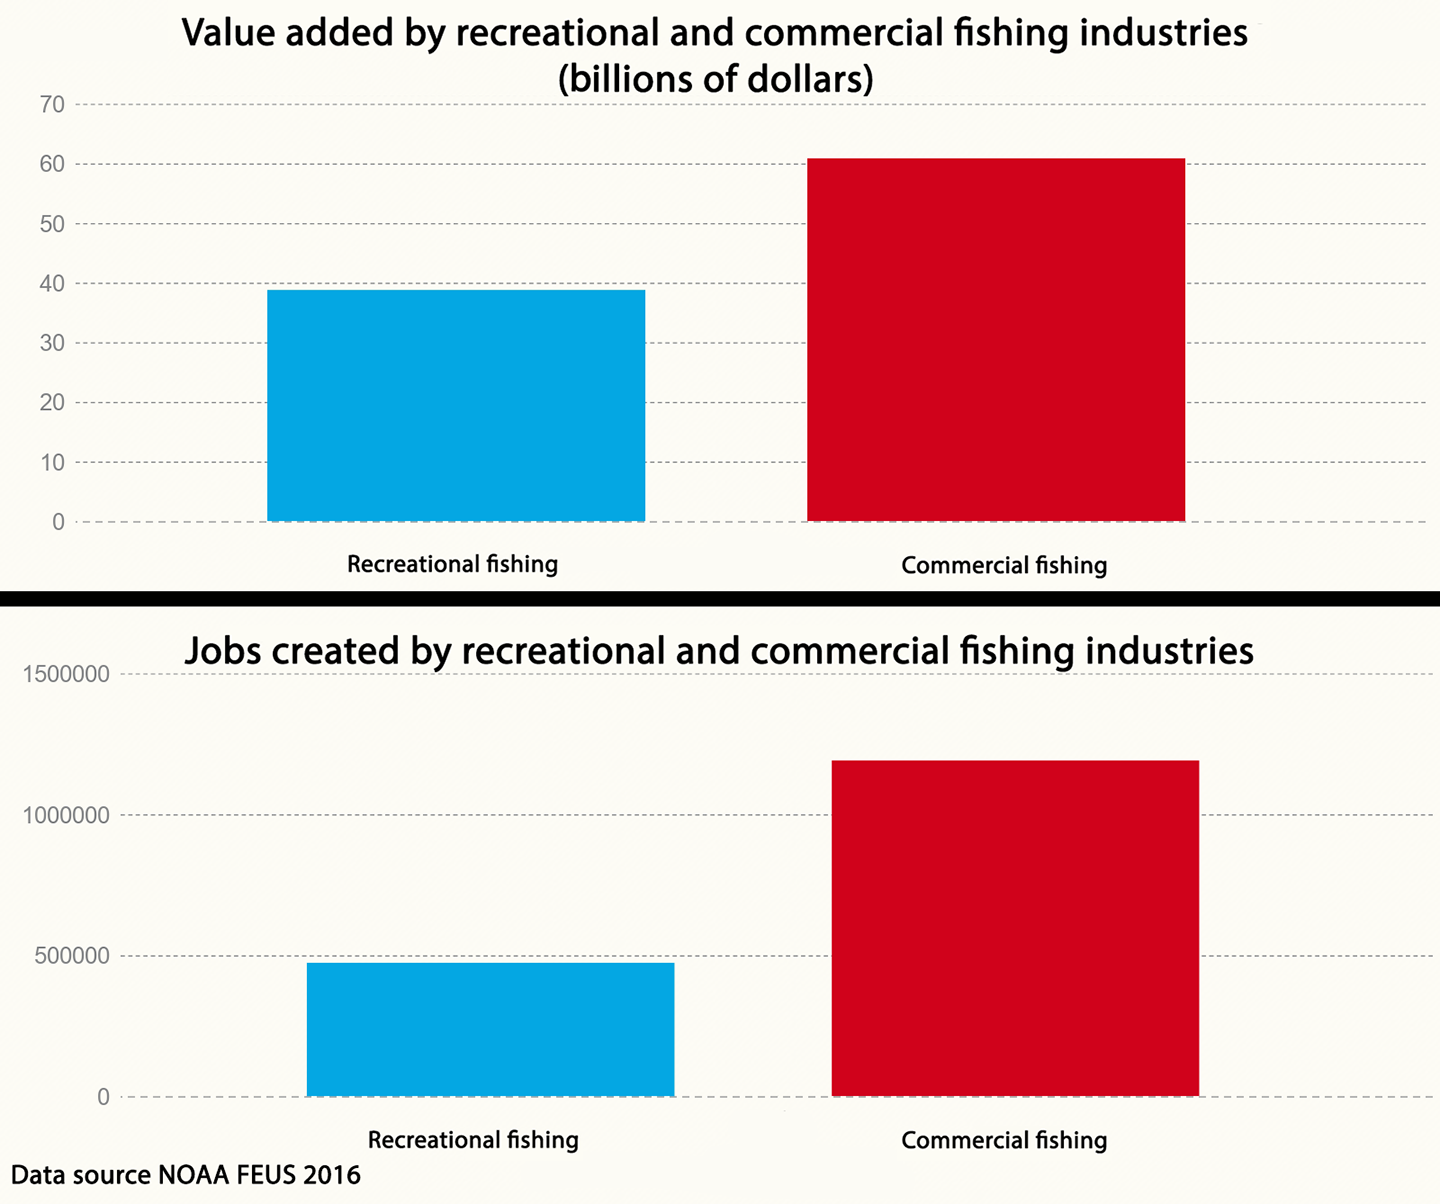 Tables detailing NOAA's data on the jobs created and value added created by recreational and commercial fishing. Commercial fishing created $60 billion and employed 1.9 million people. Recreational fishing produced $38 billion and employed 472,000 people.